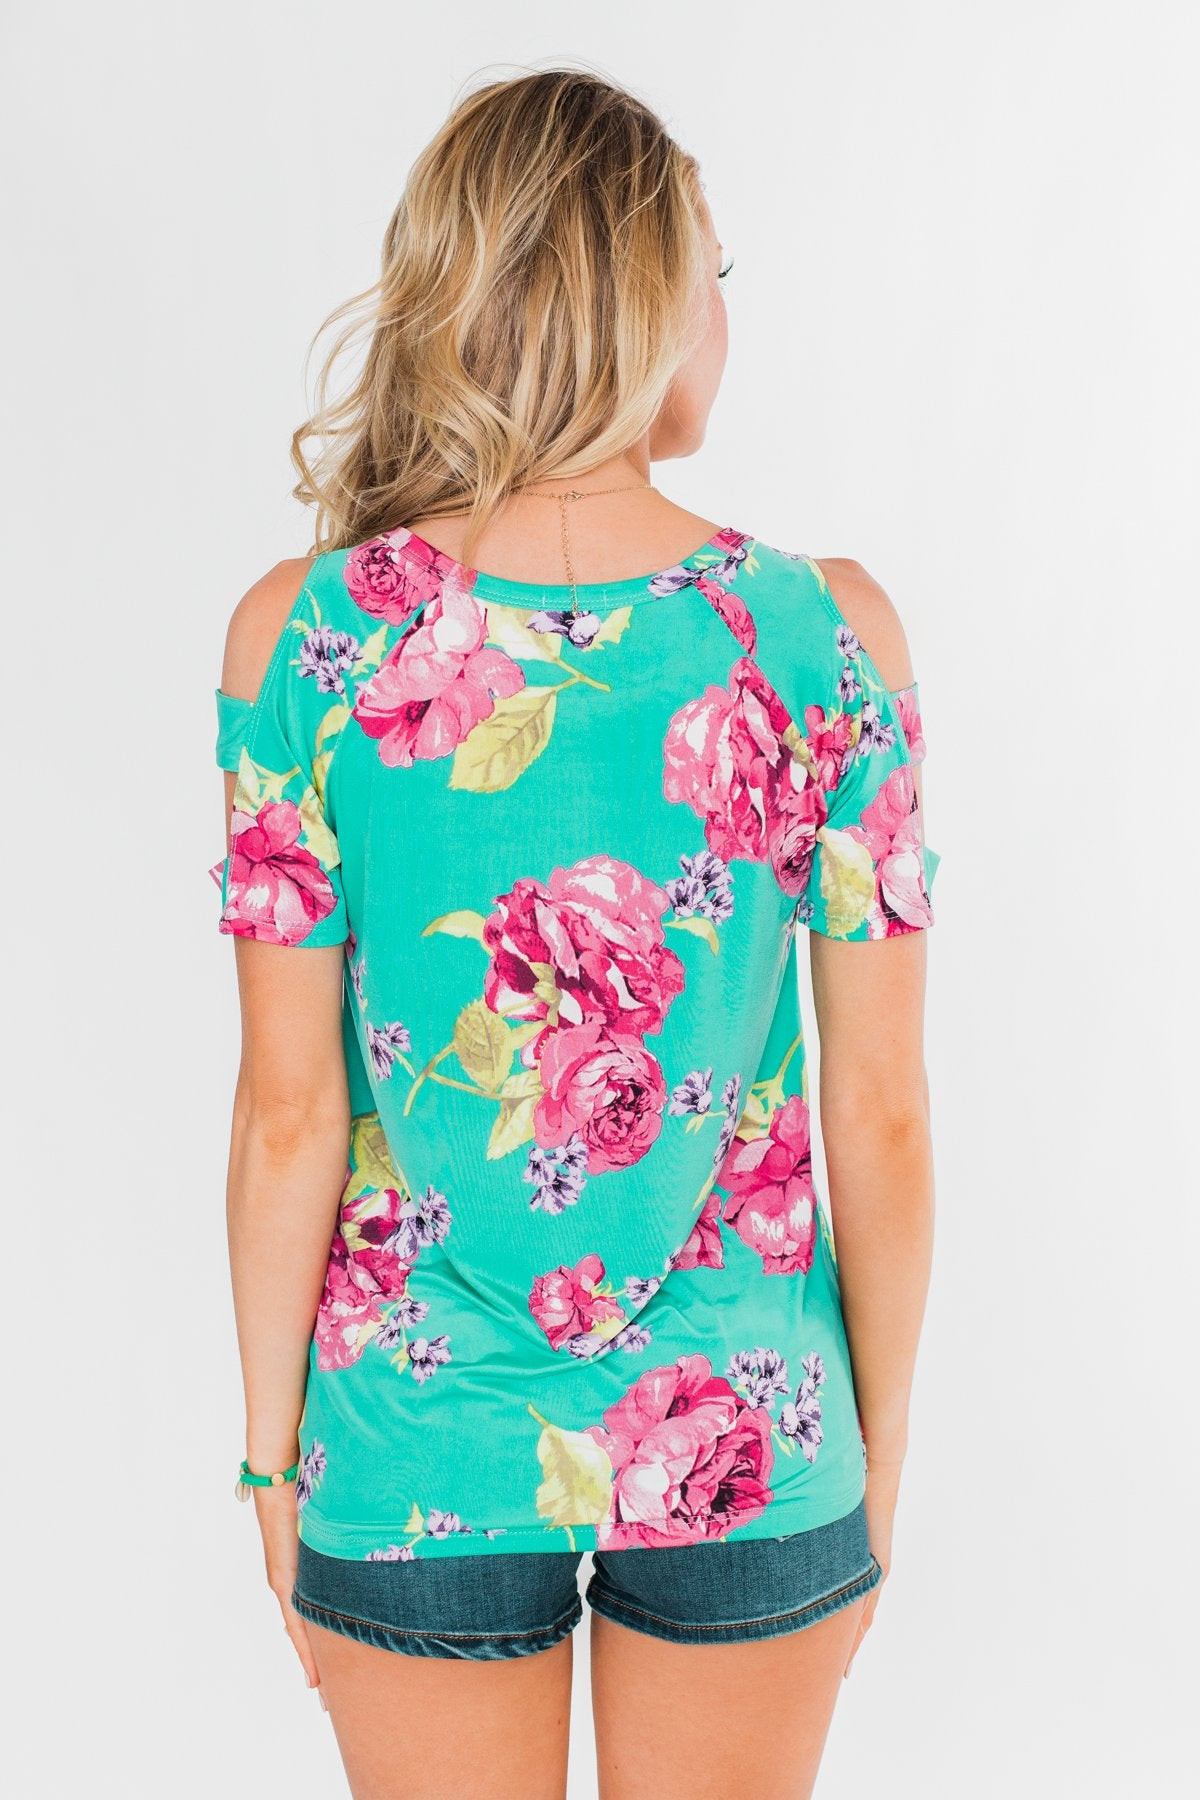 Under The Sun Cold Shoulder Floral Top- Light Teal